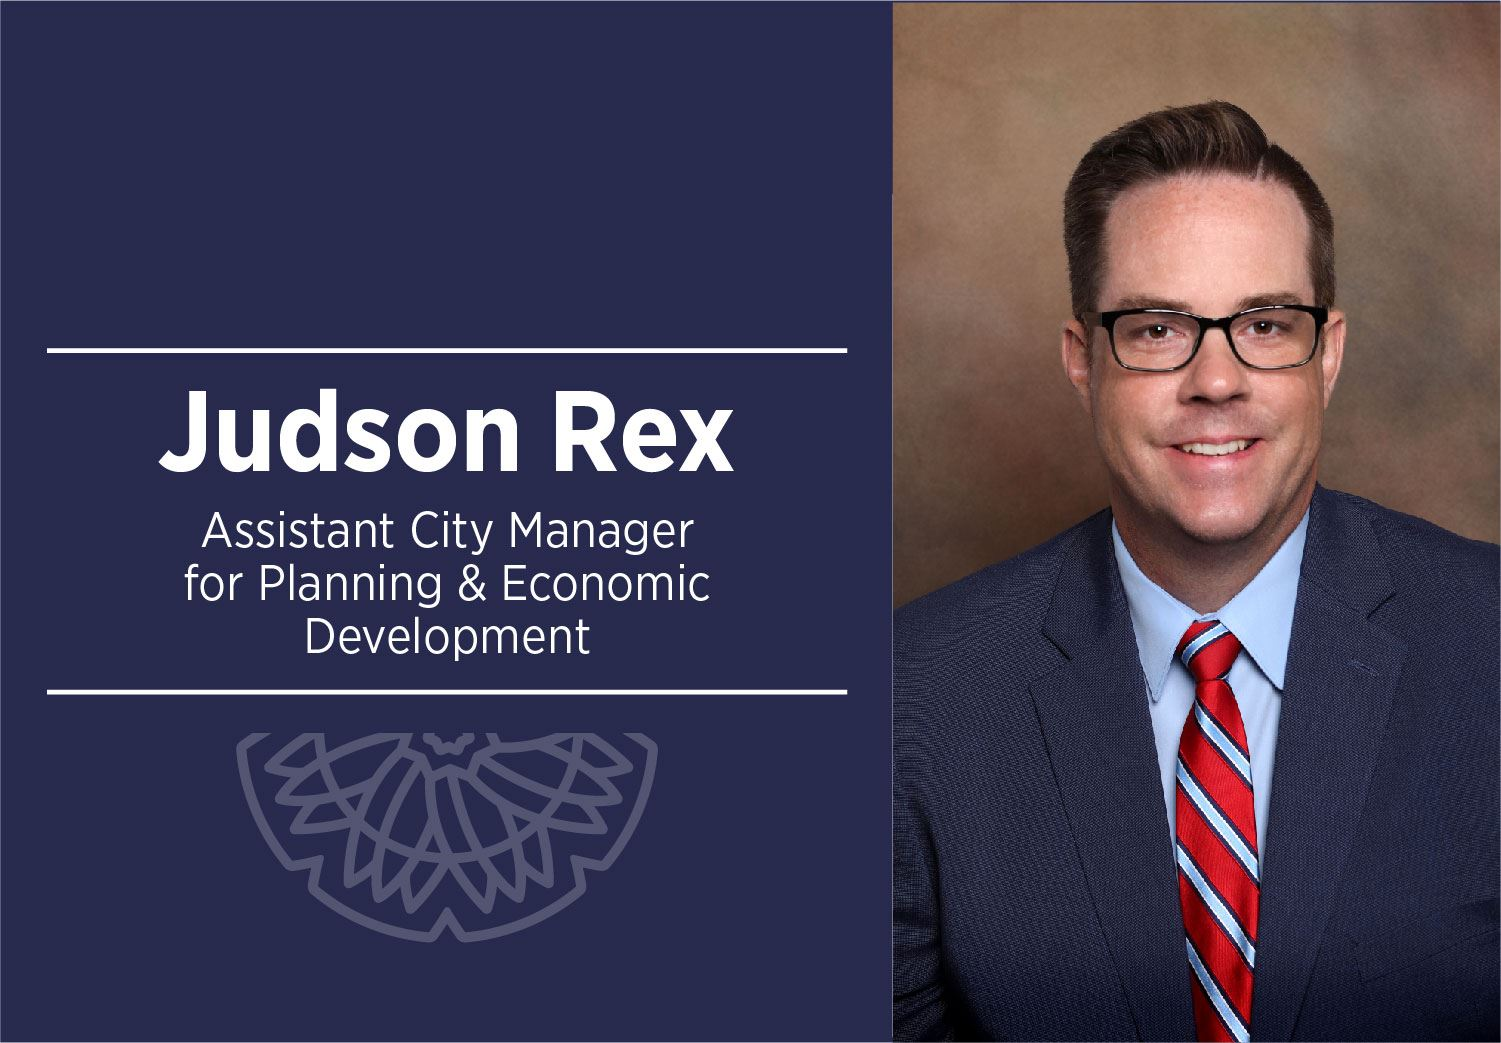 Judson Rex, Assistant City Manager